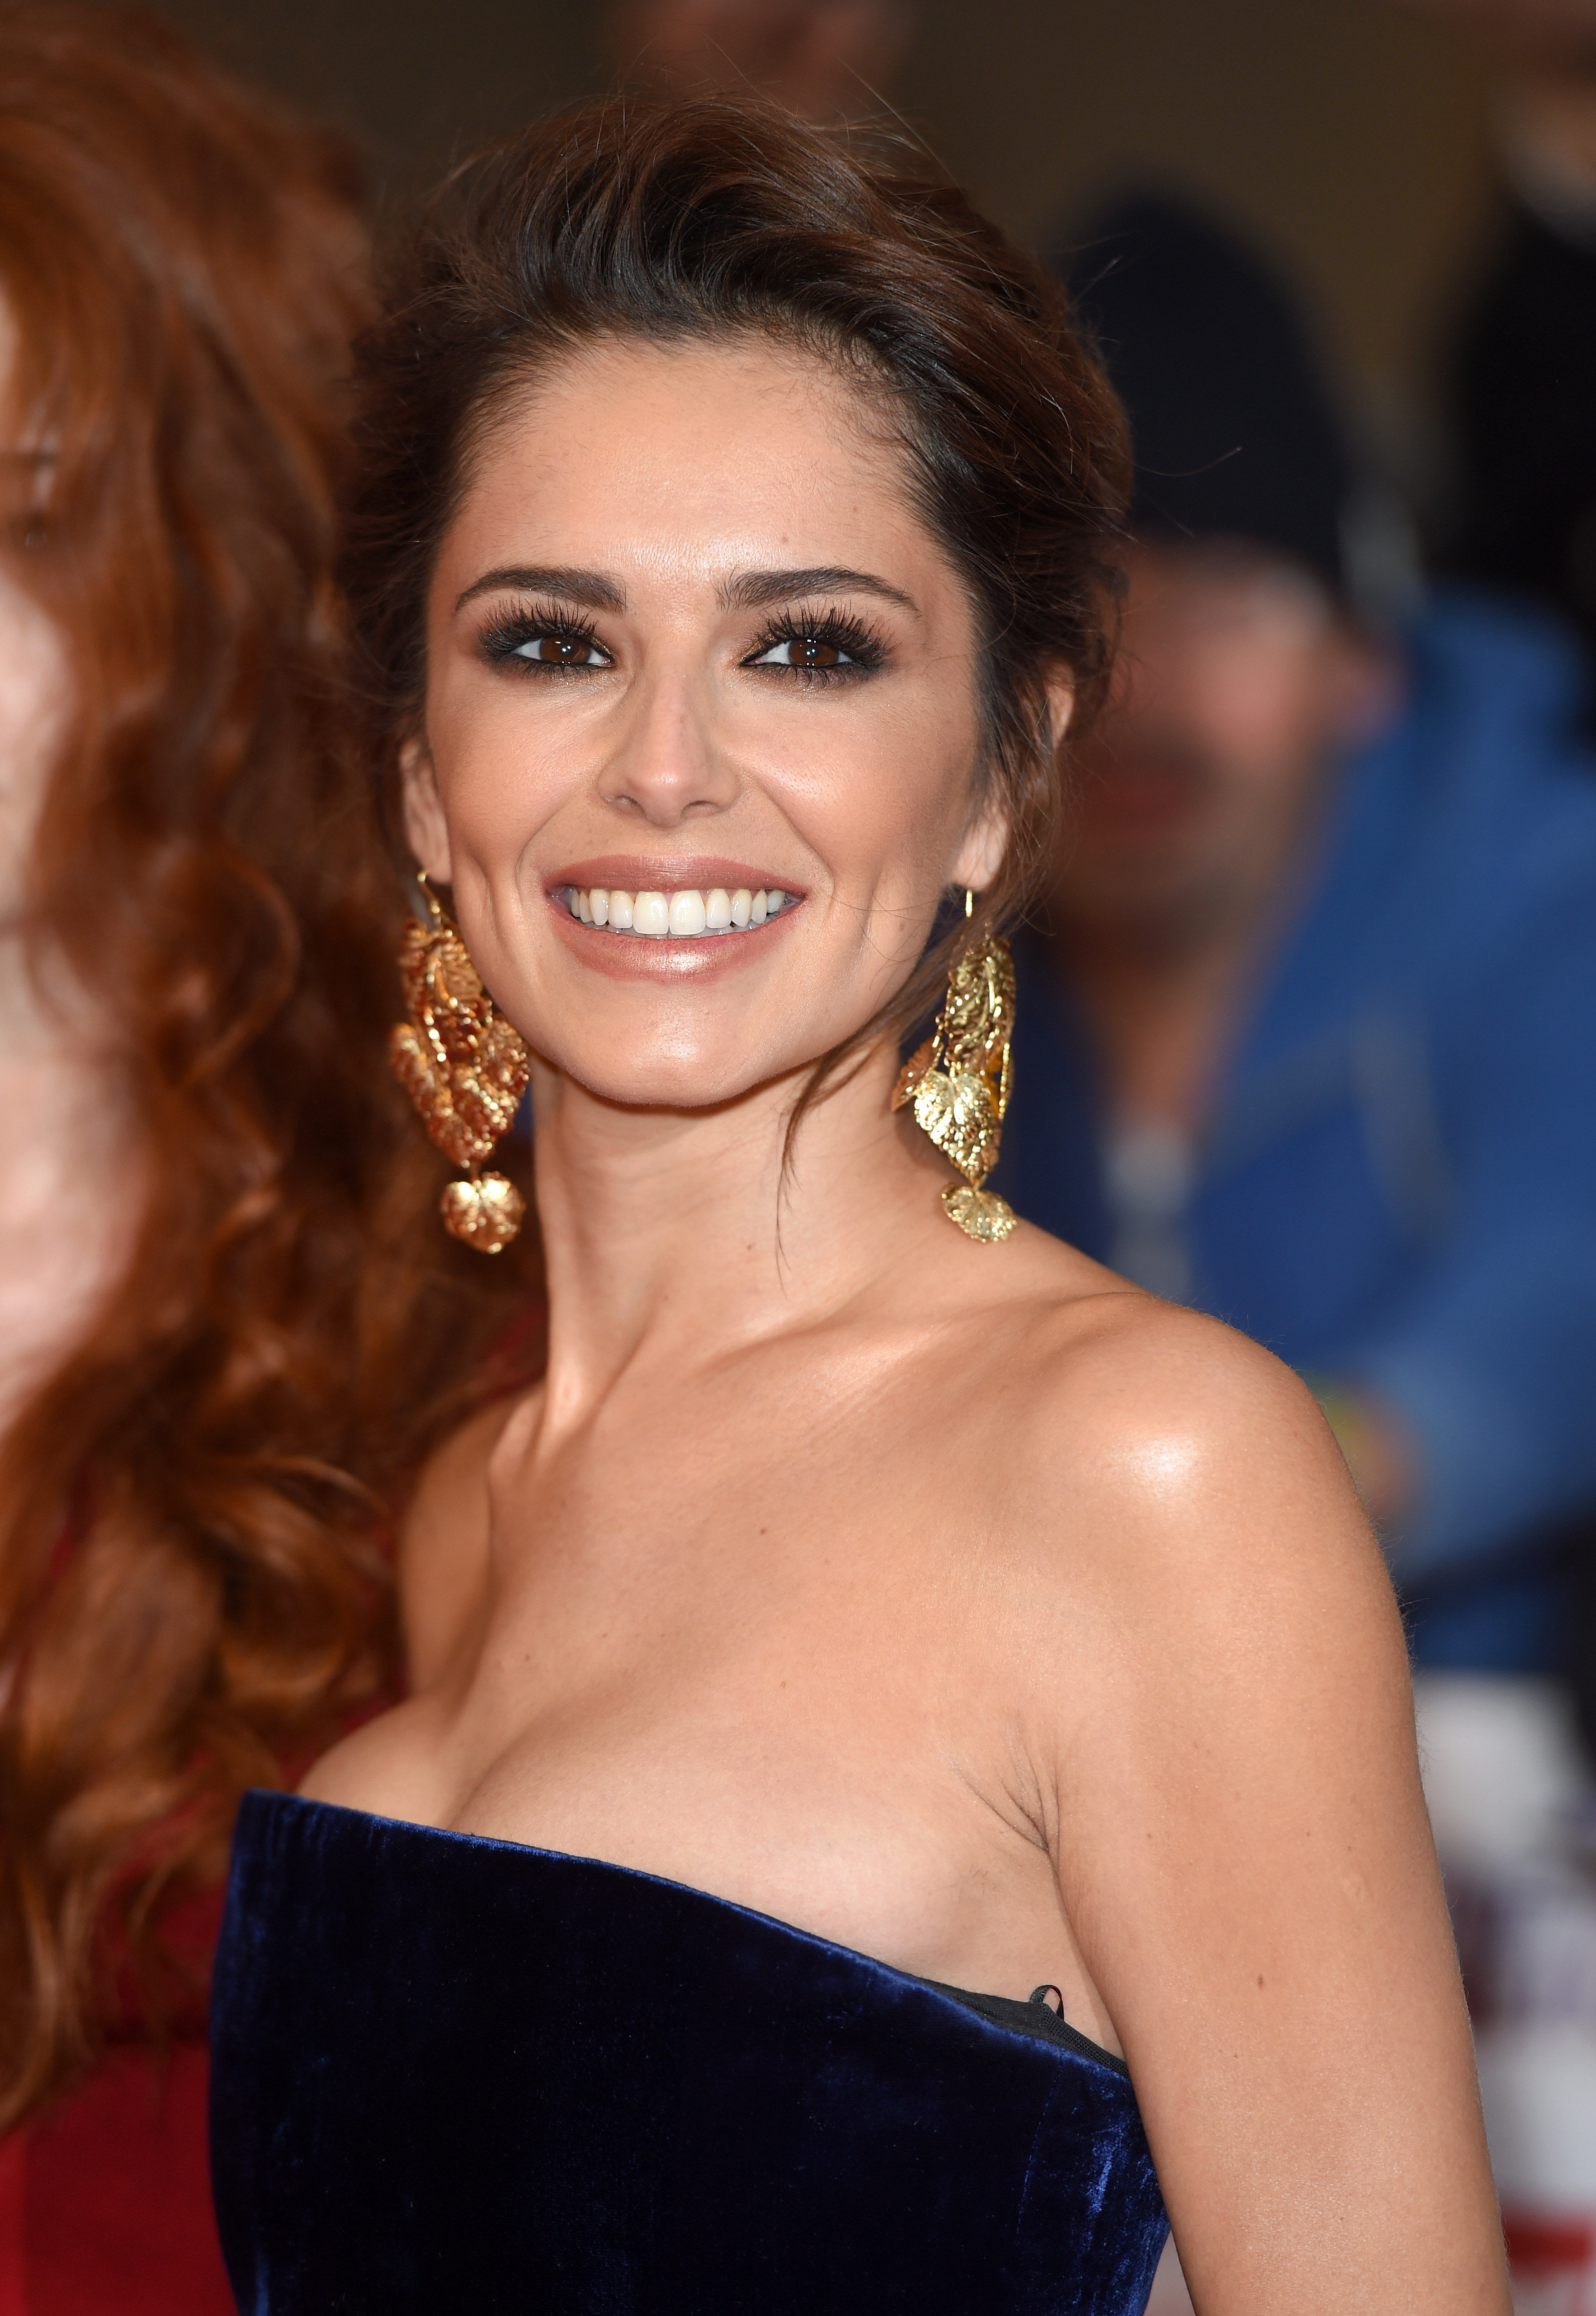 LONDON, ENGLAND - SEPTEMBER 28: Cheryl Fernandez-Versini attends the Pride of Britain awards at The Grosvenor House Hotel on September 28, 2015 in London, England. (Photo by Karwai Tang/WireImage)